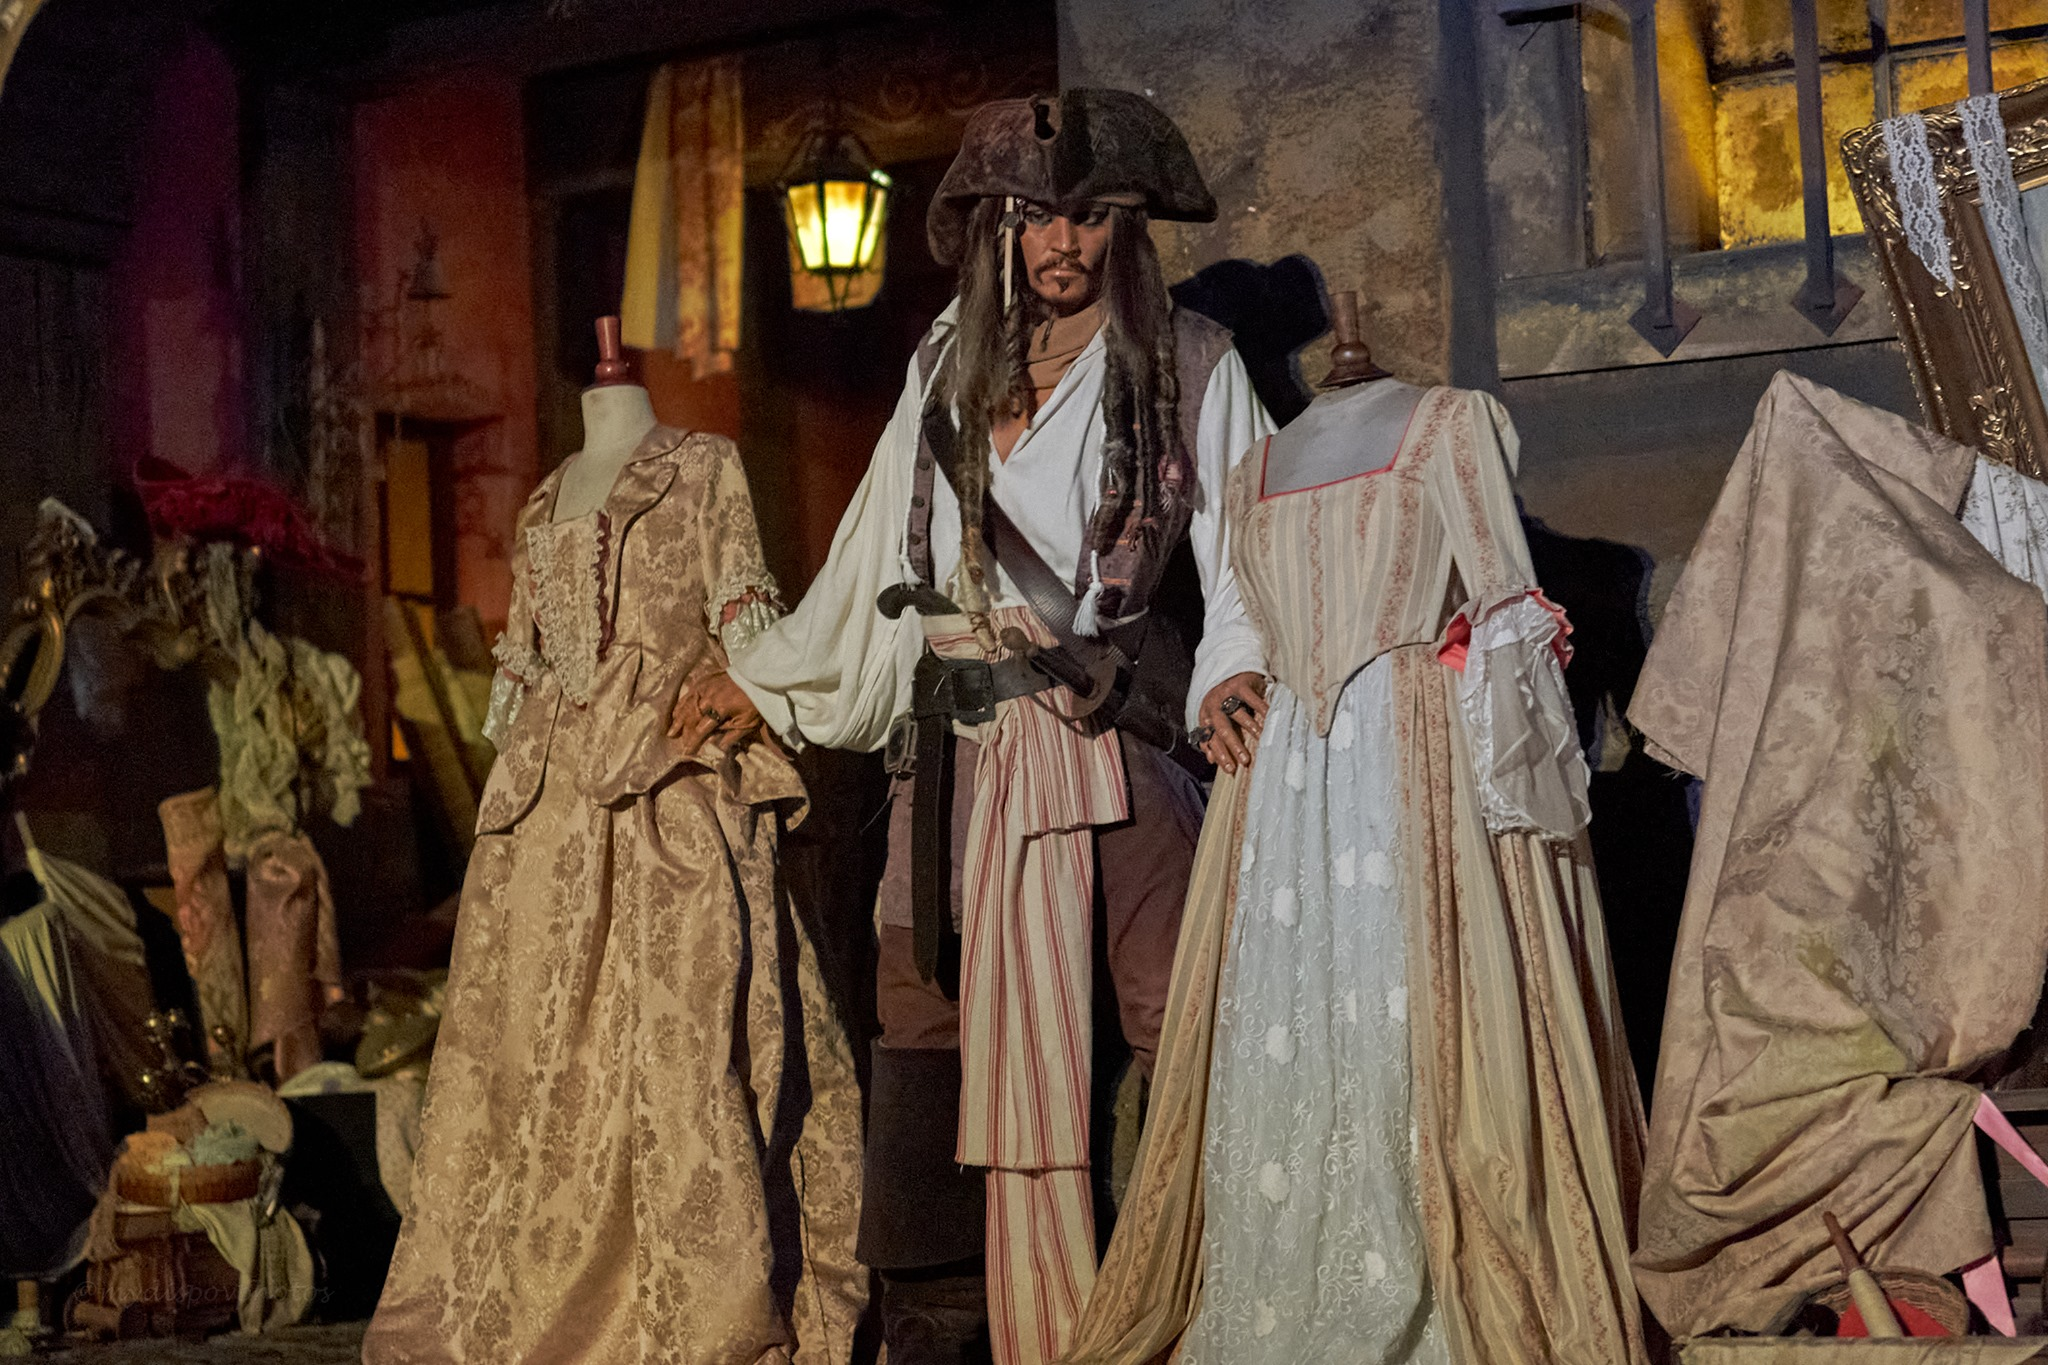 Captain Jack Sparrow in Disney's Pirates of the Caribbean